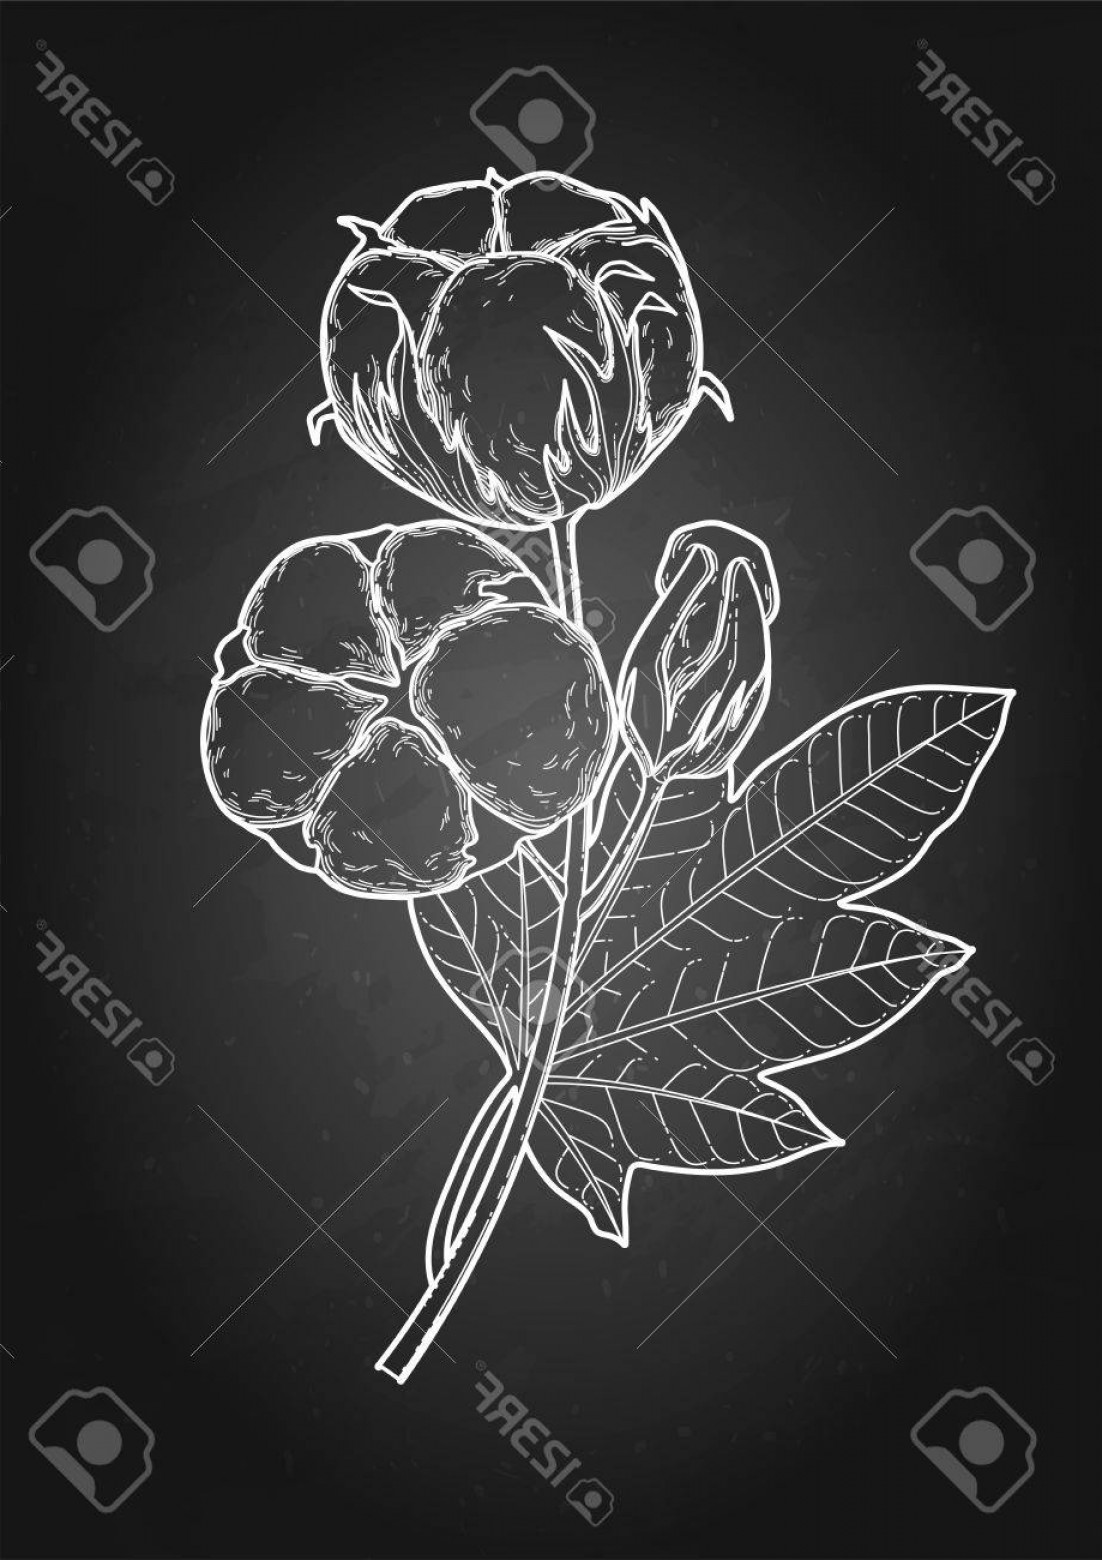 Cotton Vector Graphic: Photostock Vector Graphic Cotton Plant Vector Art Isolated On The Chalkboard